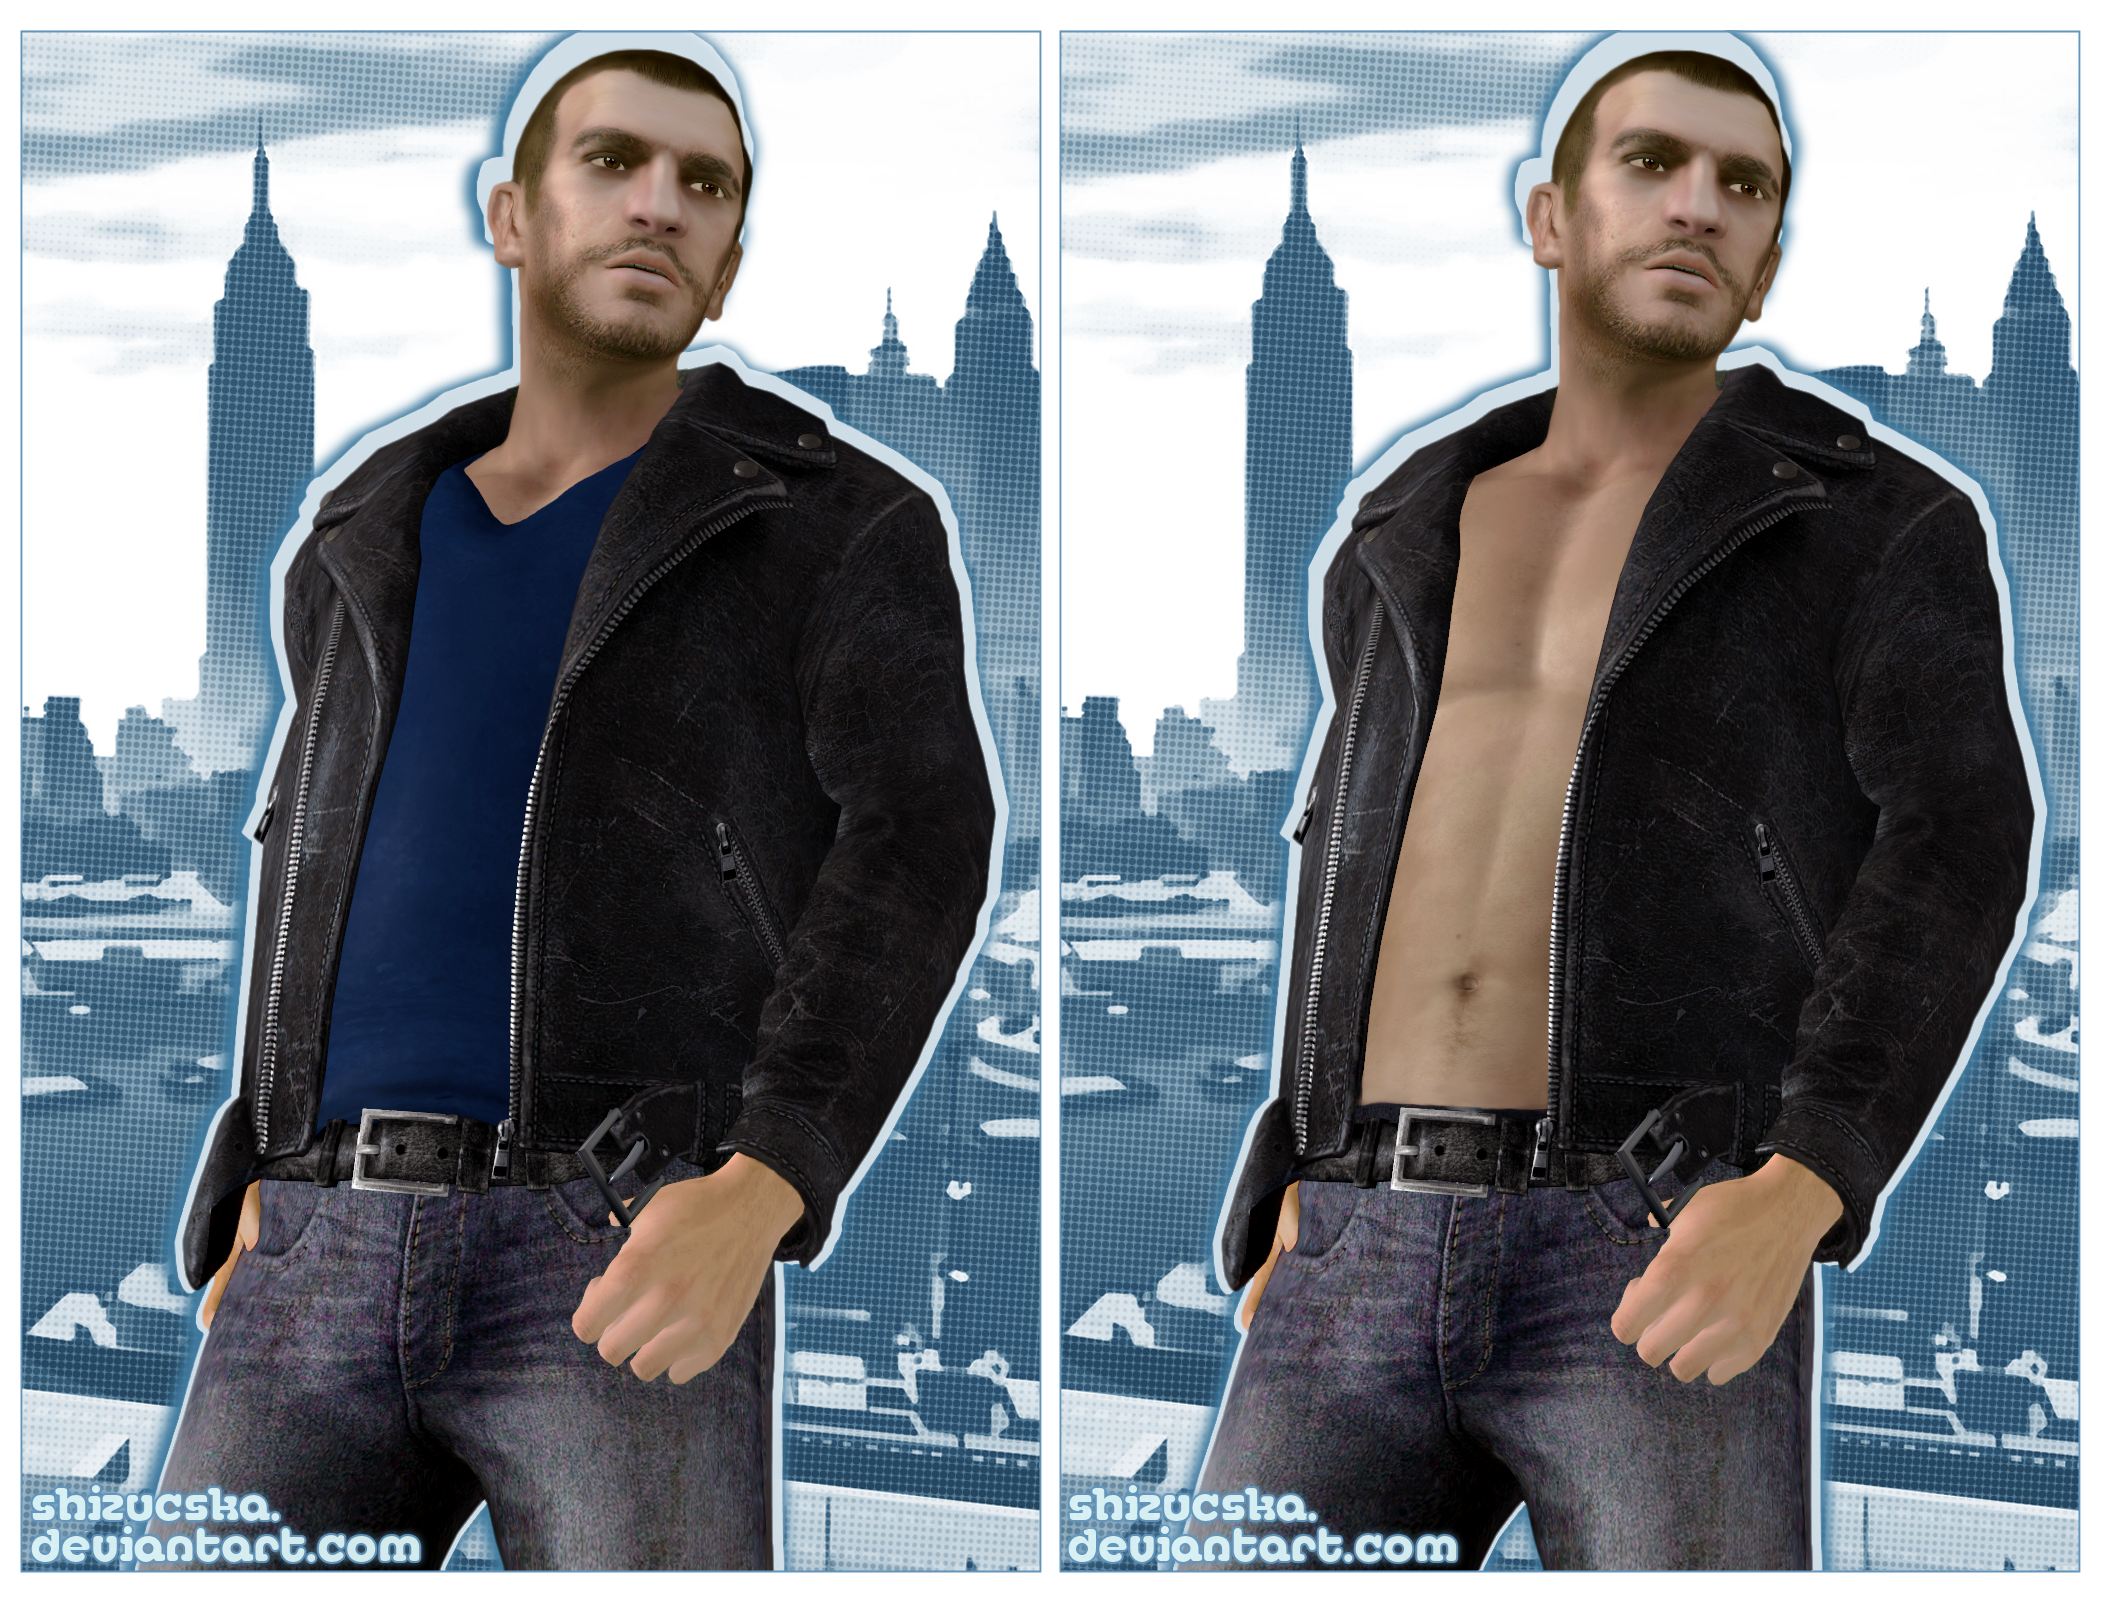 Shirtless Niko Bellic